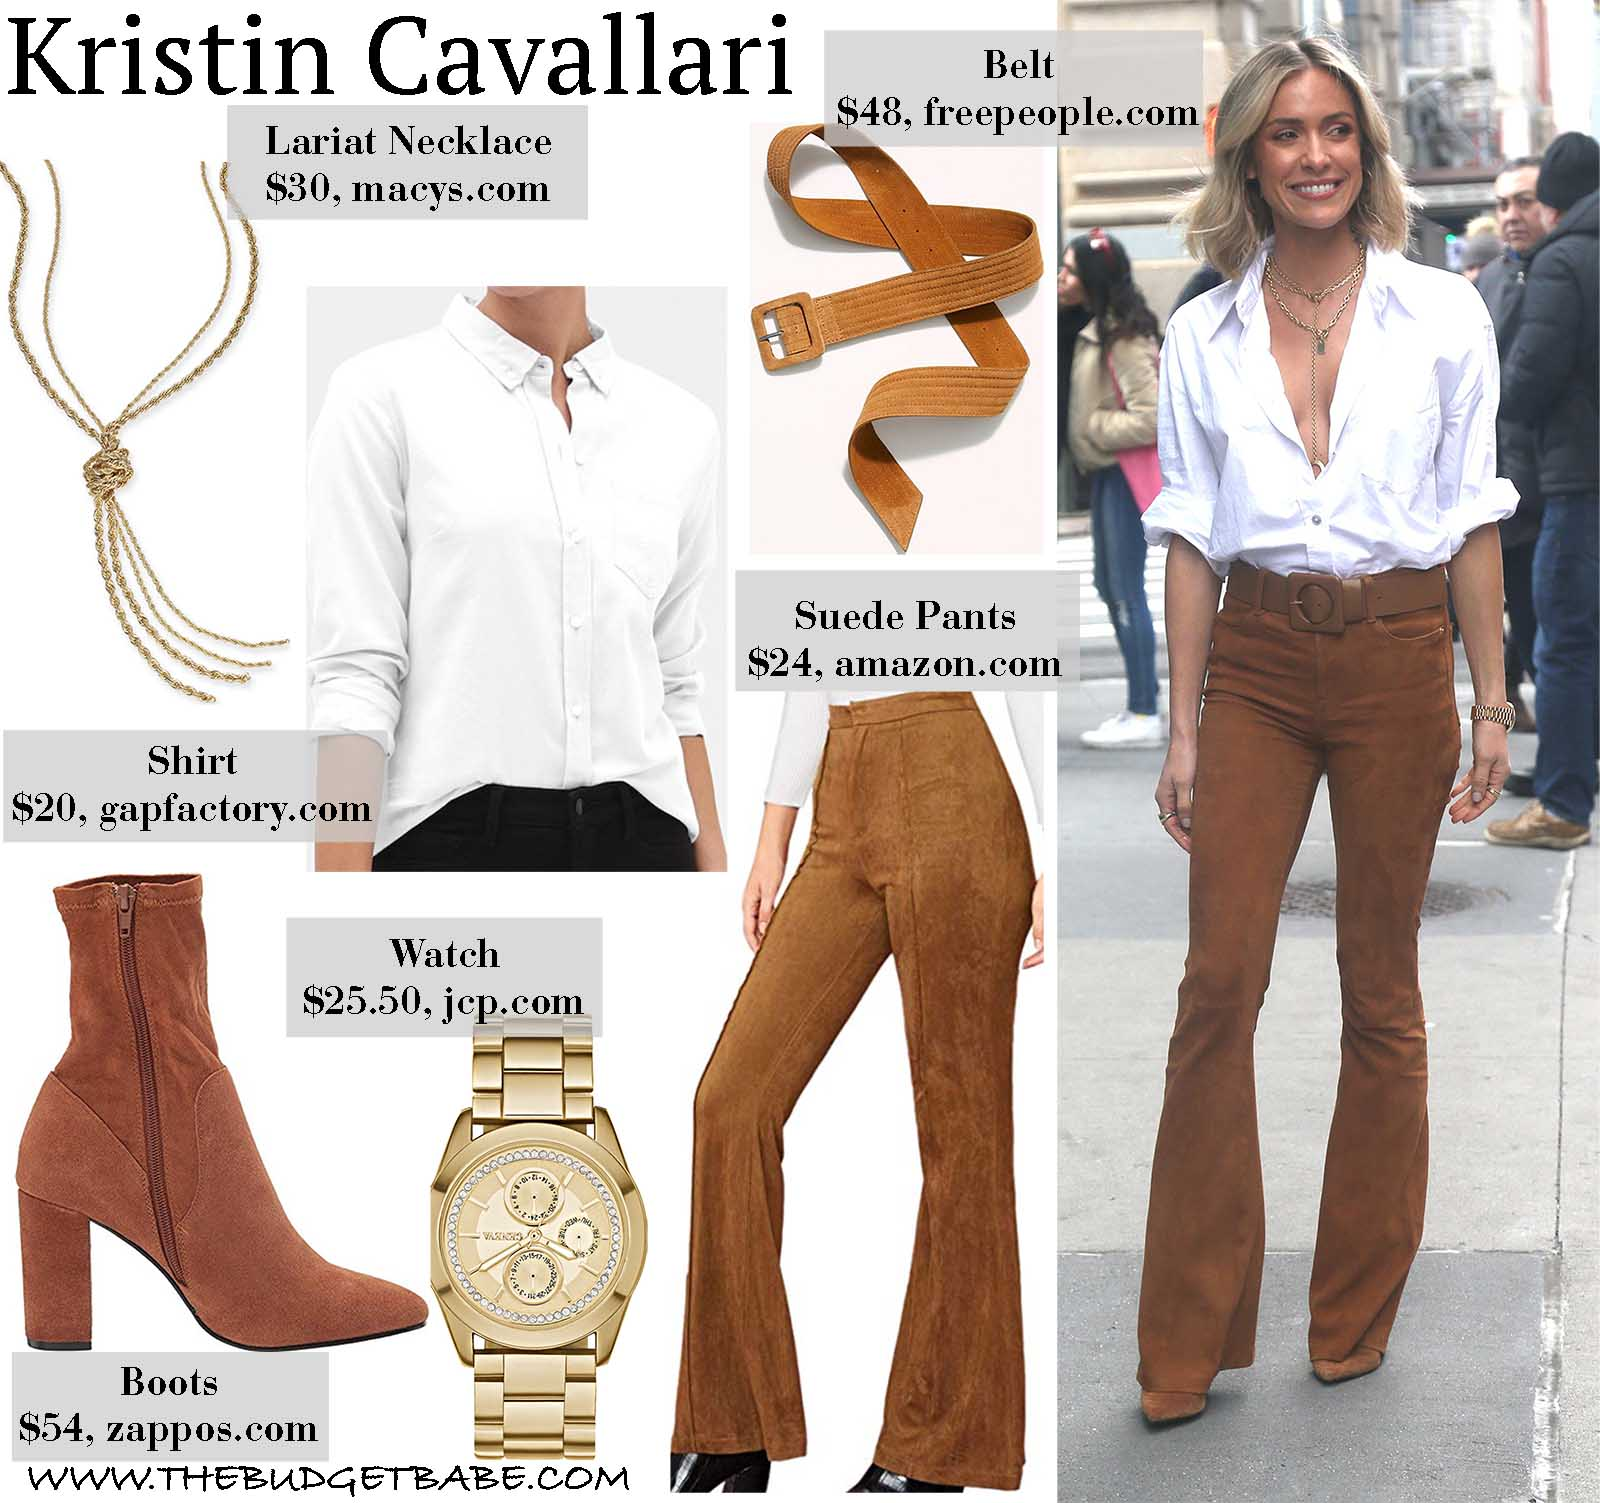 Kristin is 70's chic in suede bell pants!